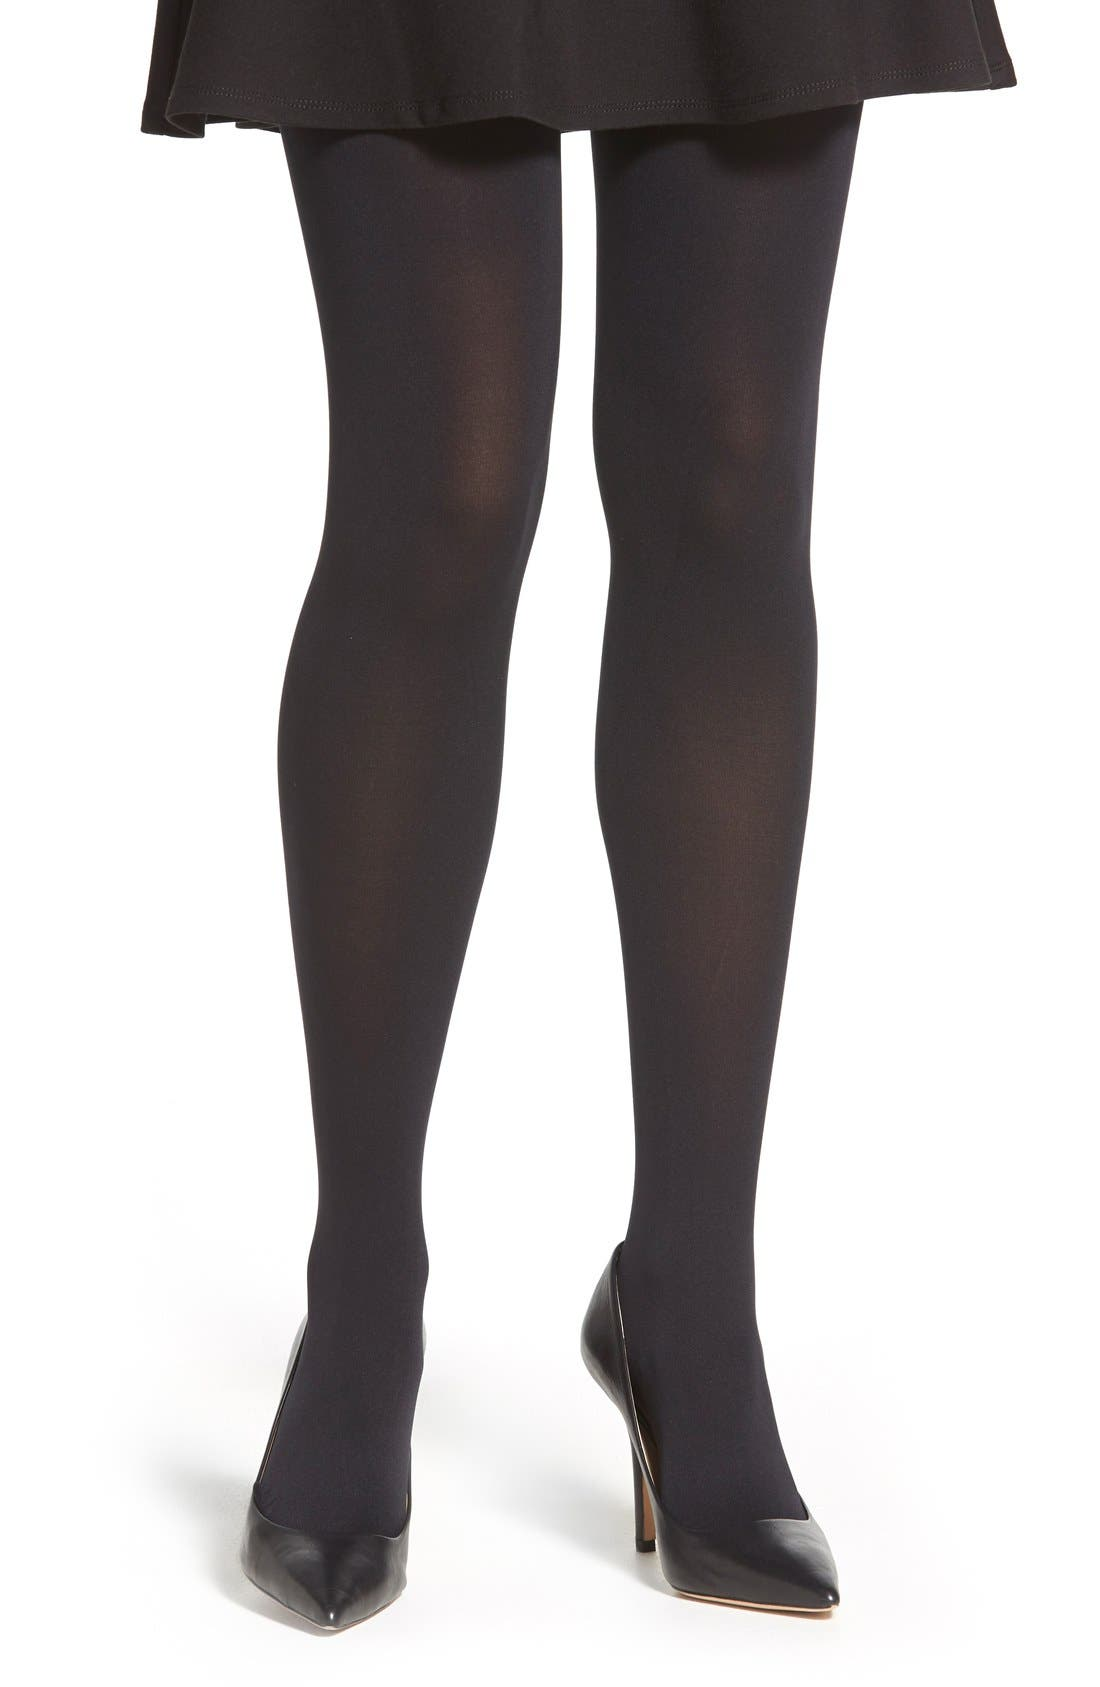 PRETTY POLLY 'Legs on the Go' Tights, Main, color, 007